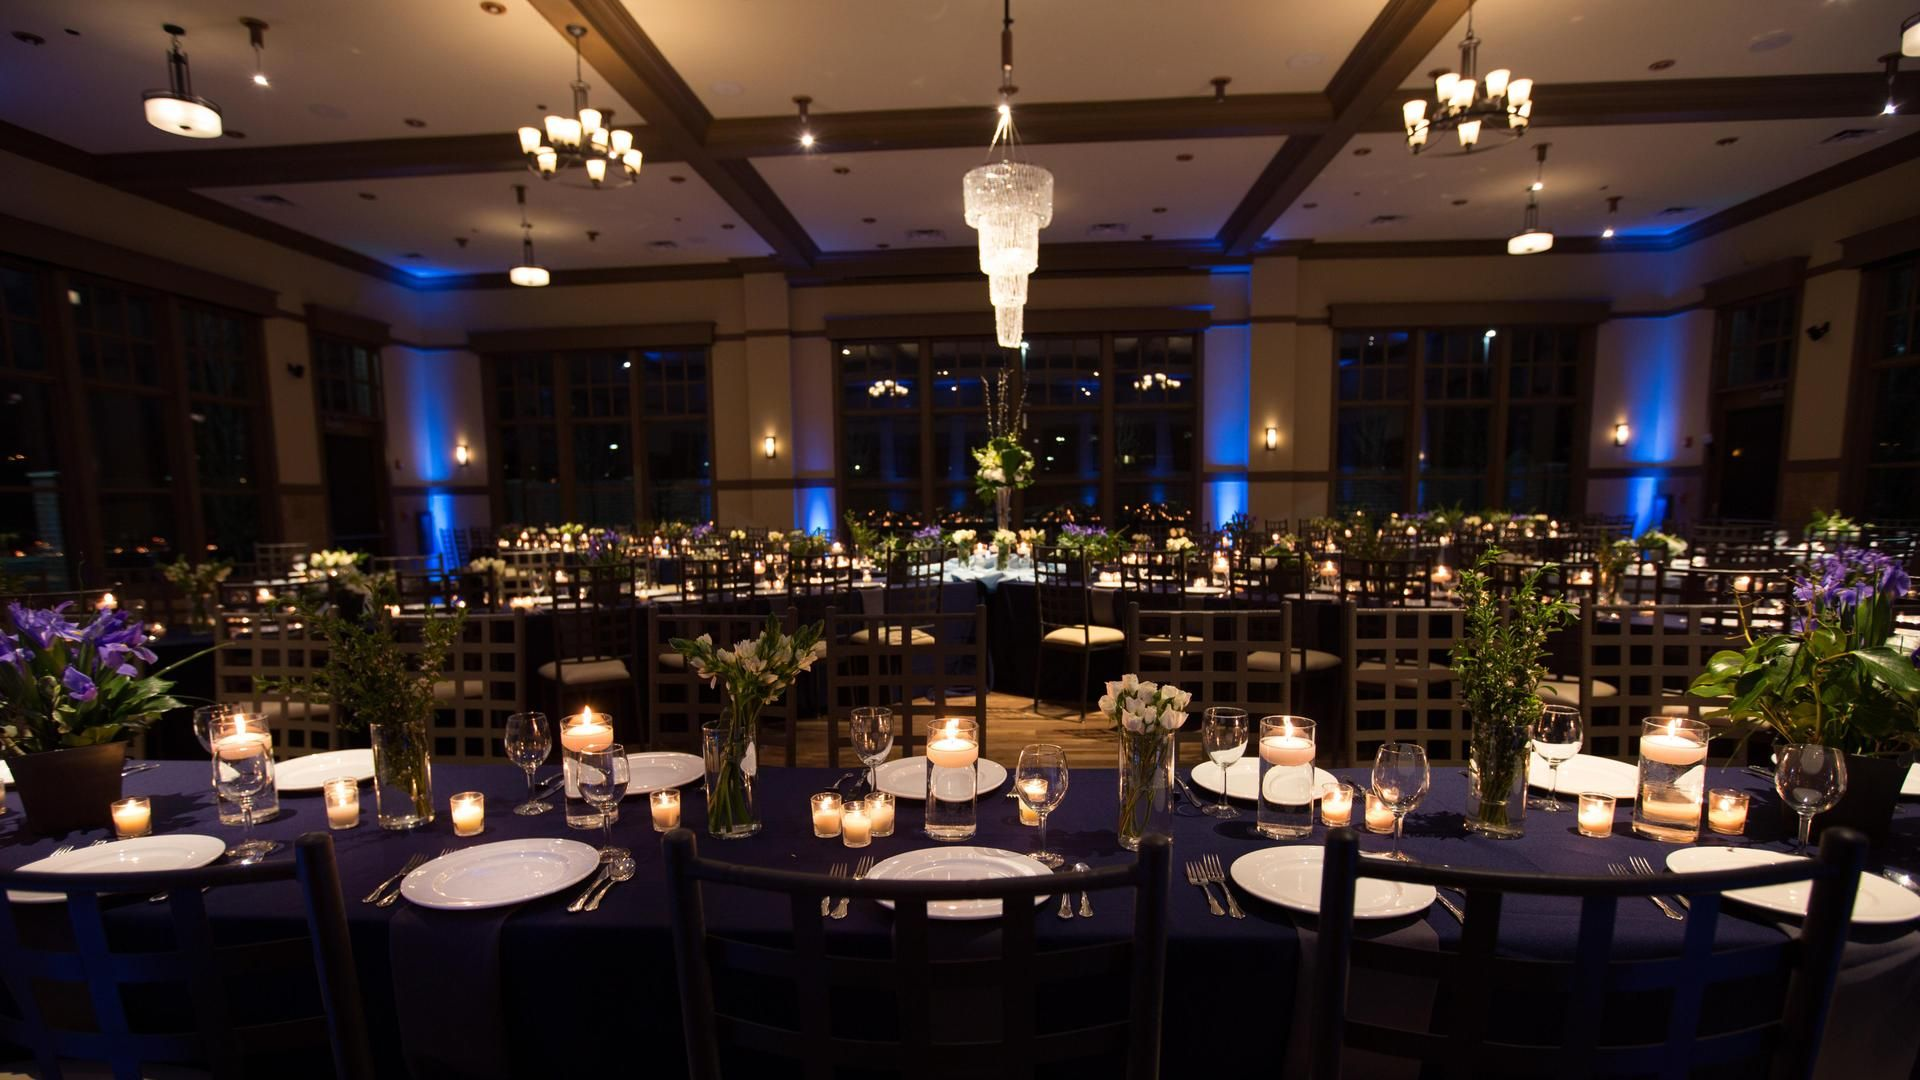 Event Space in Dickinson, Texas: